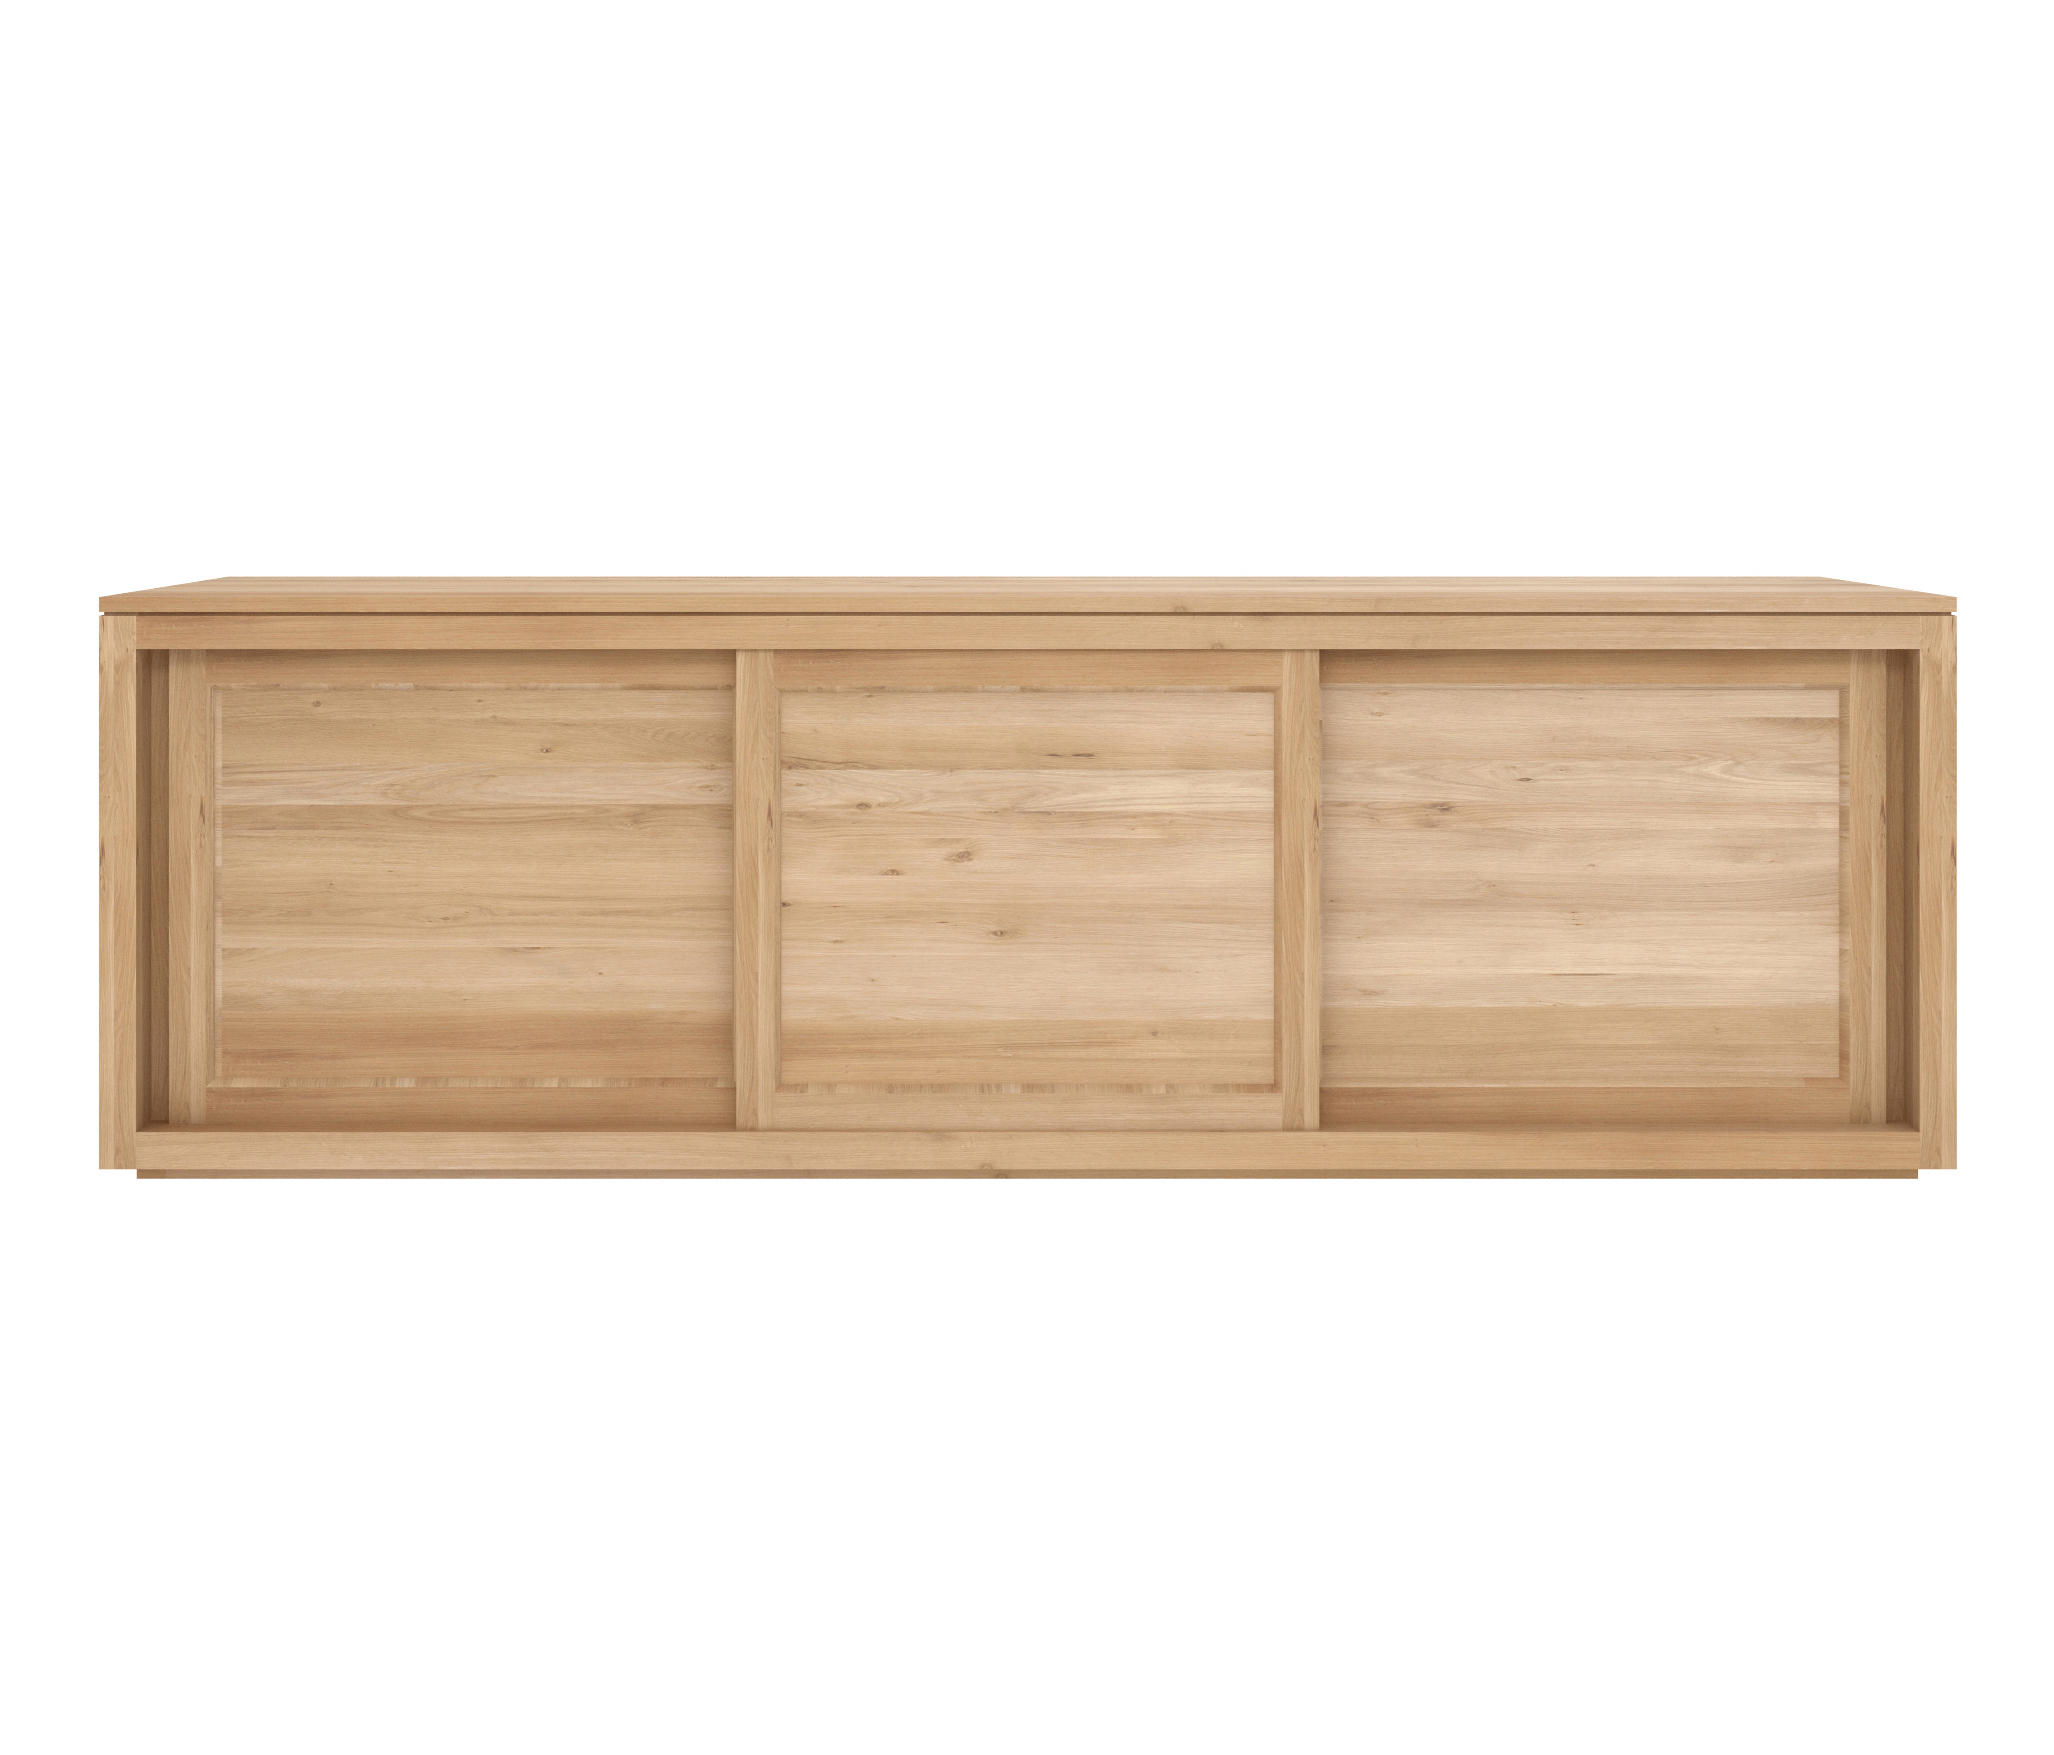 Ethnicraft Oak Pure sideboard 200 cm - 3 sliding doors